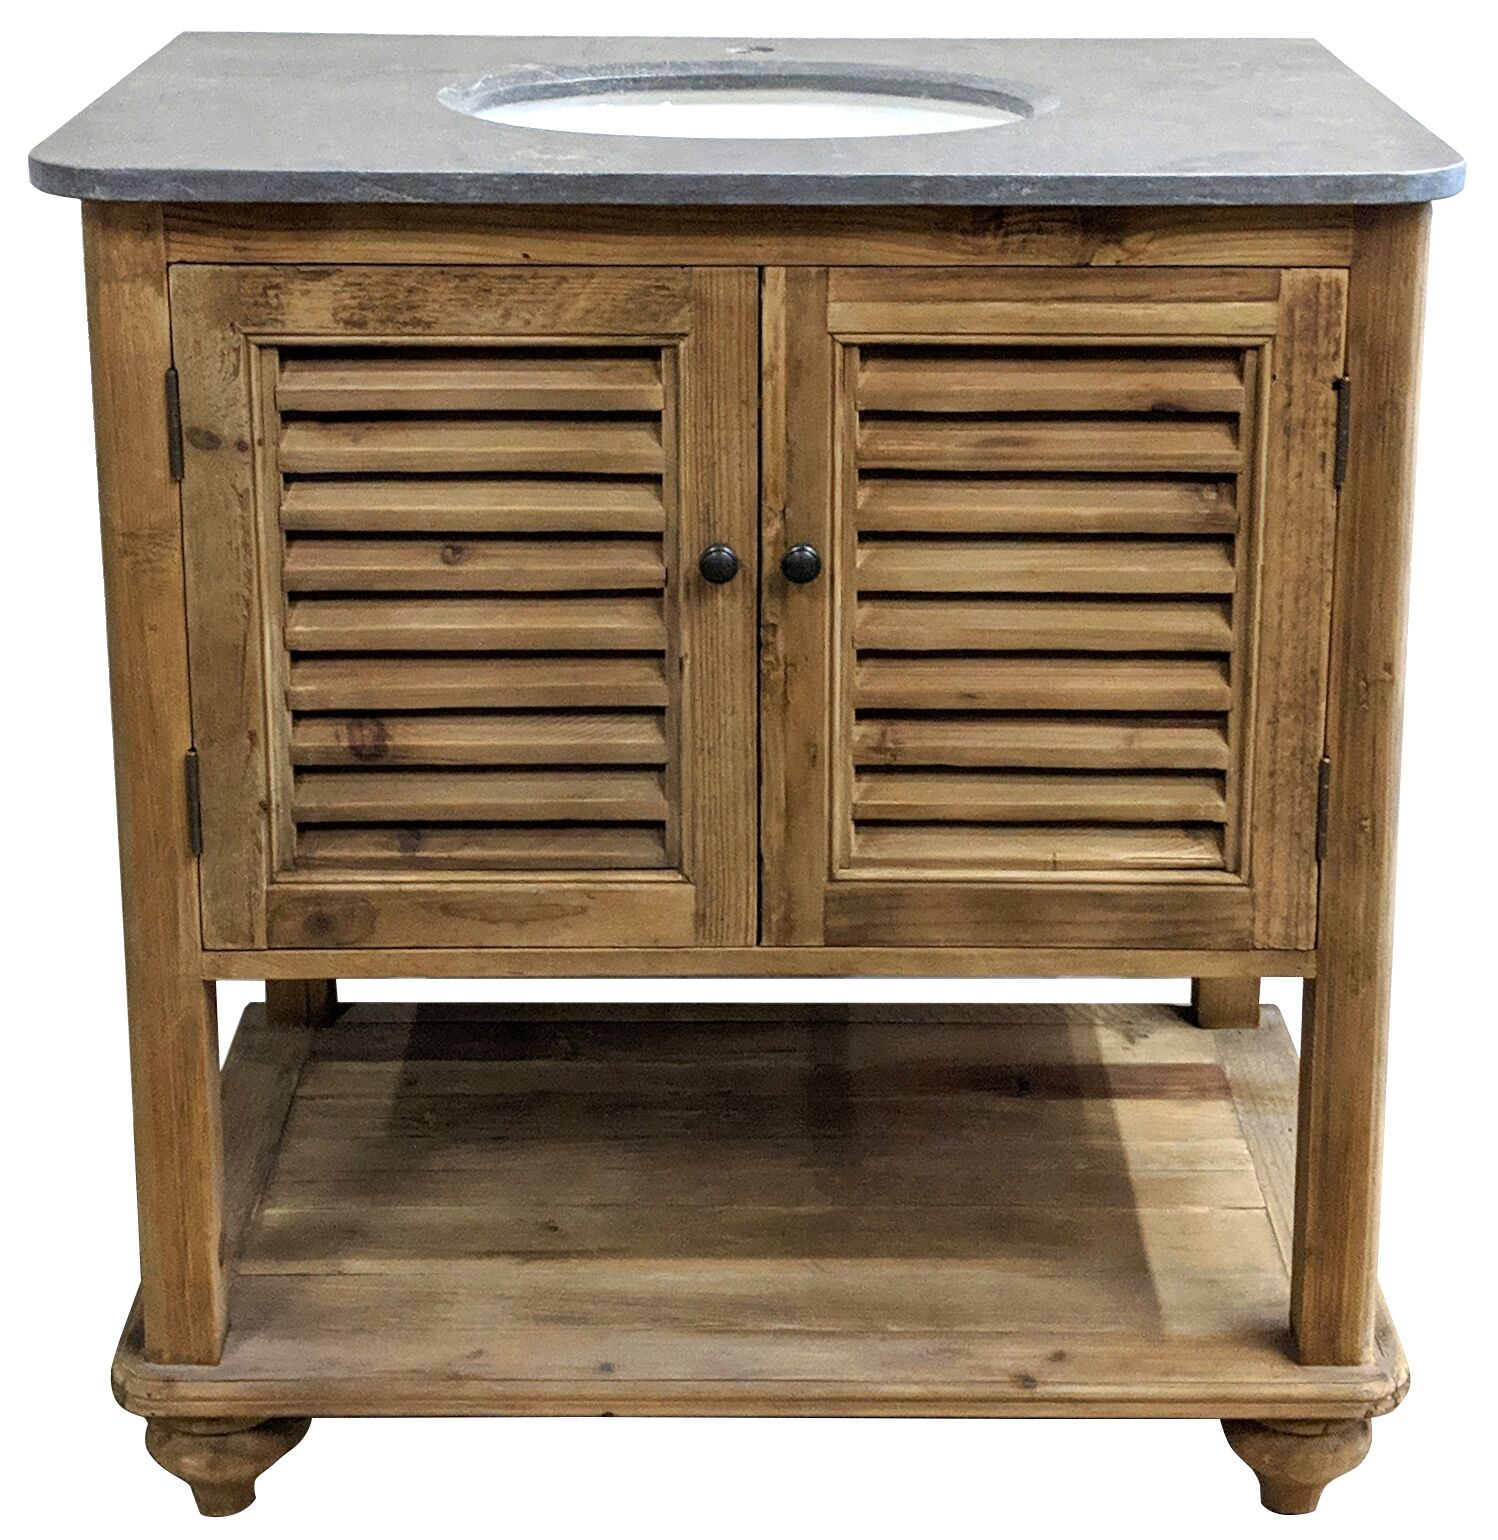 "34"" Handcrafted Reclaimed Pine Solid Wood Single Pothead Vanity Natural Pine Finish"